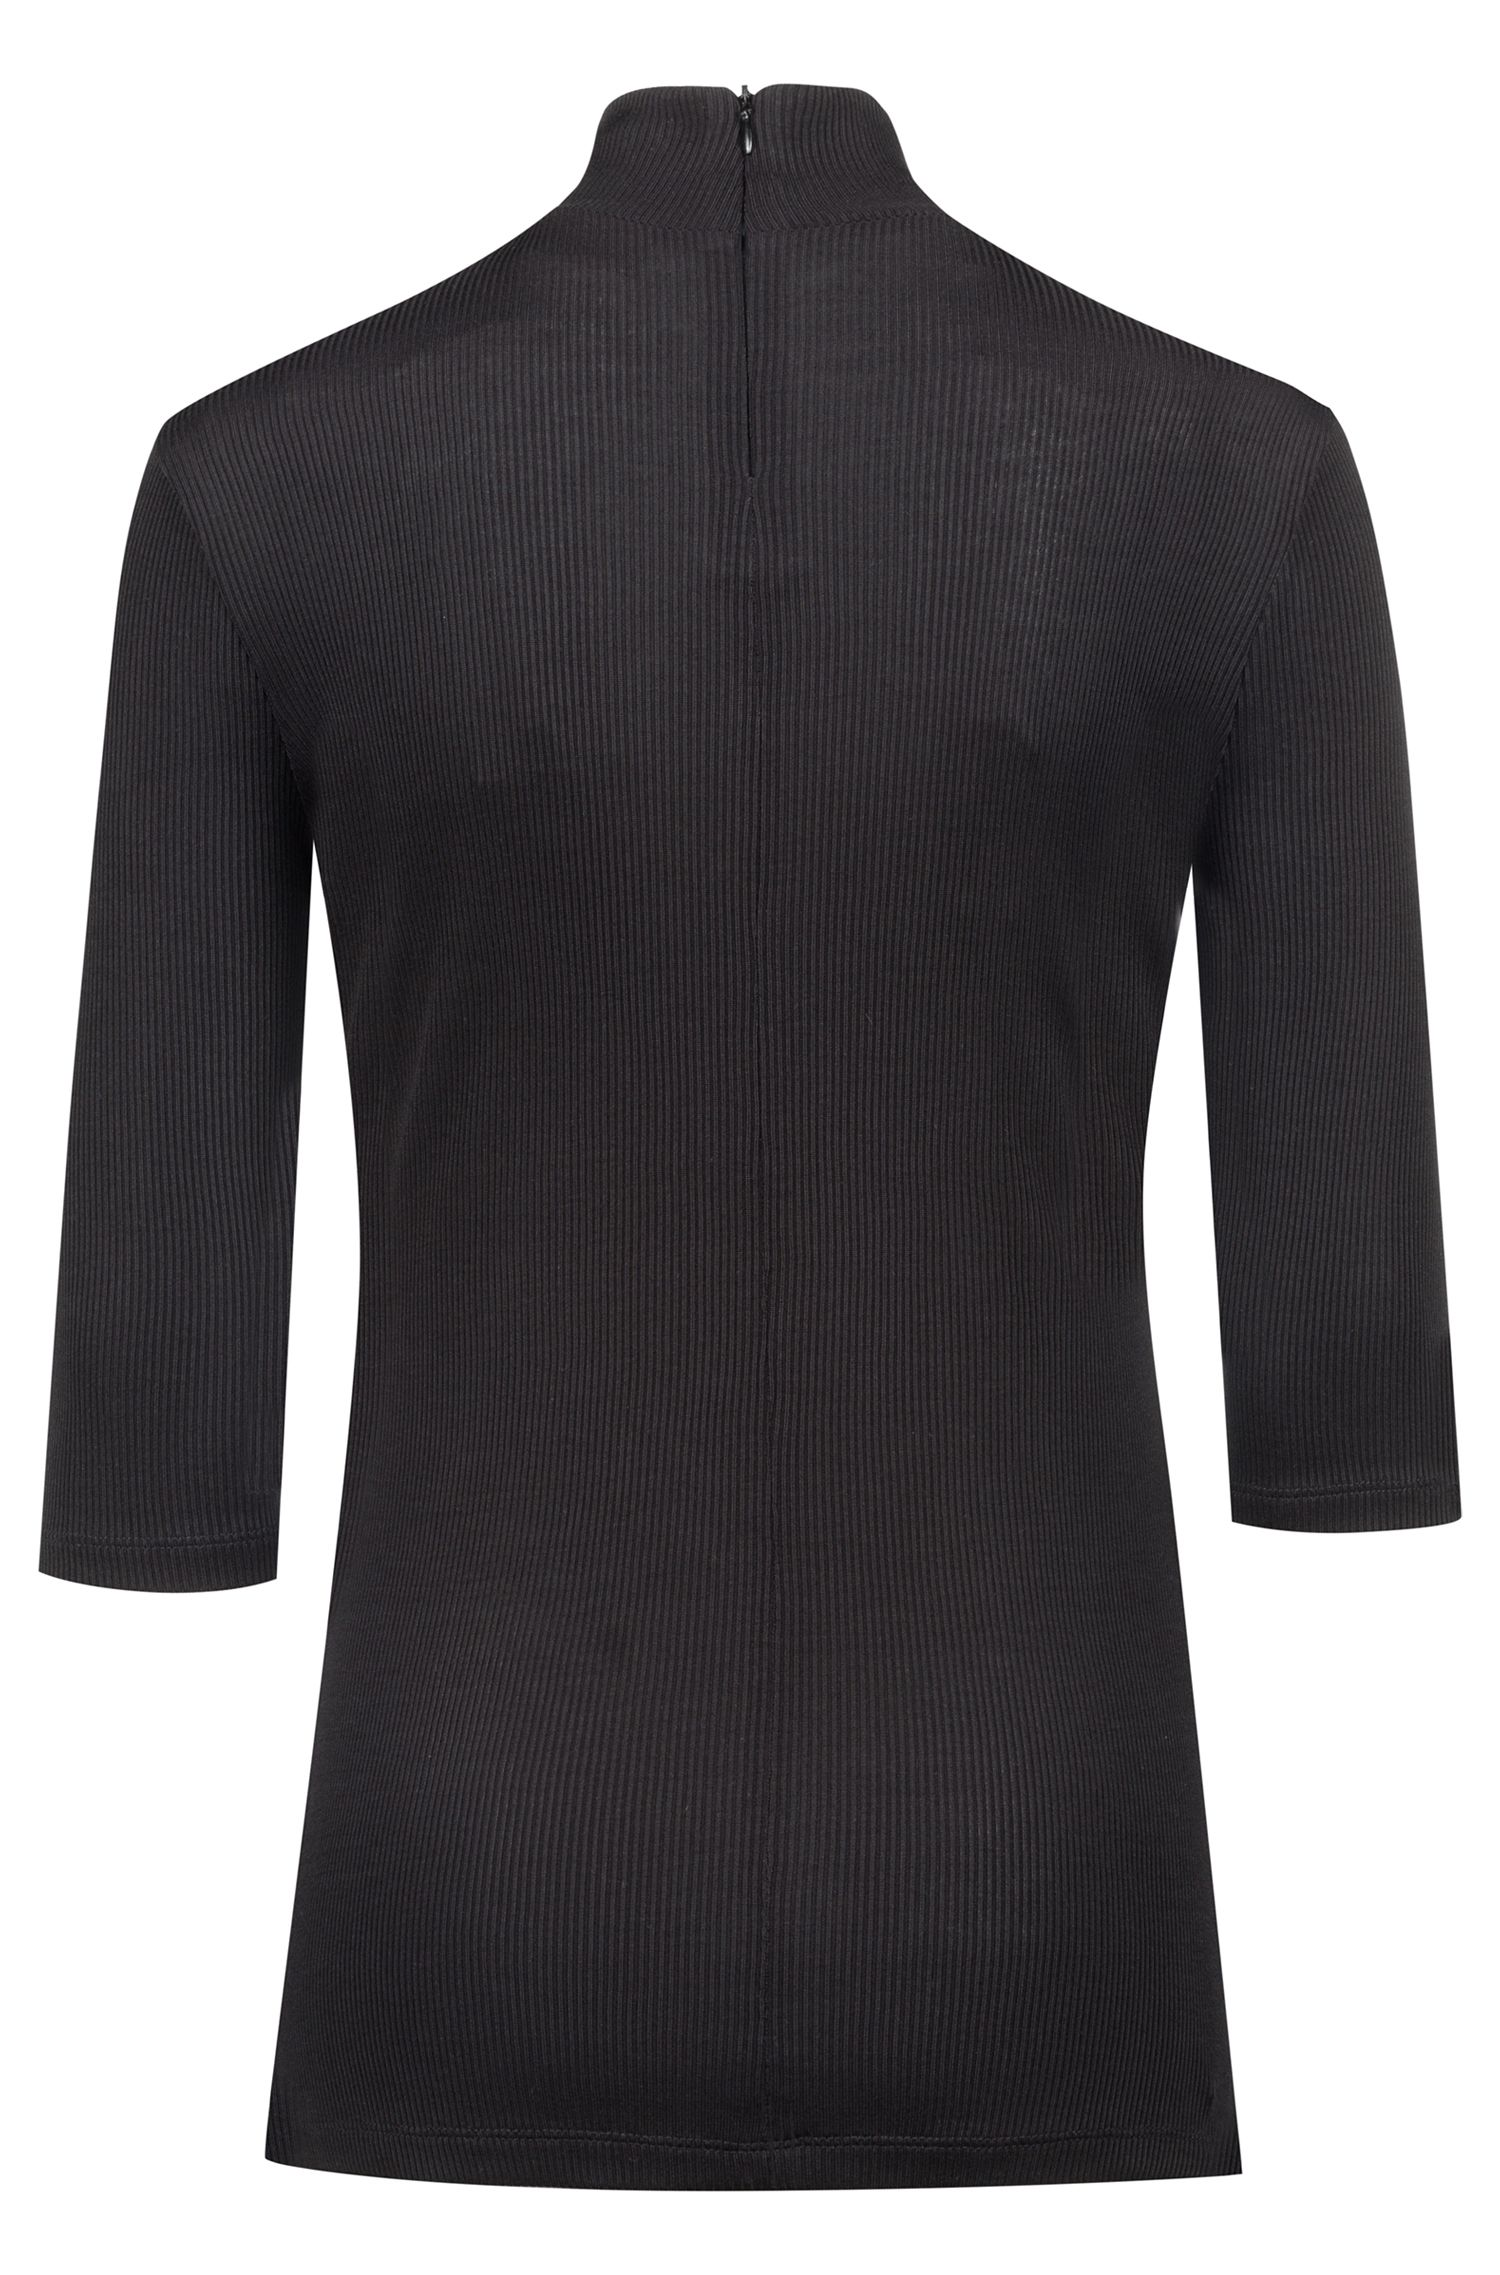 Slim-fit jersey top with turtleneck and short sleeves, Black